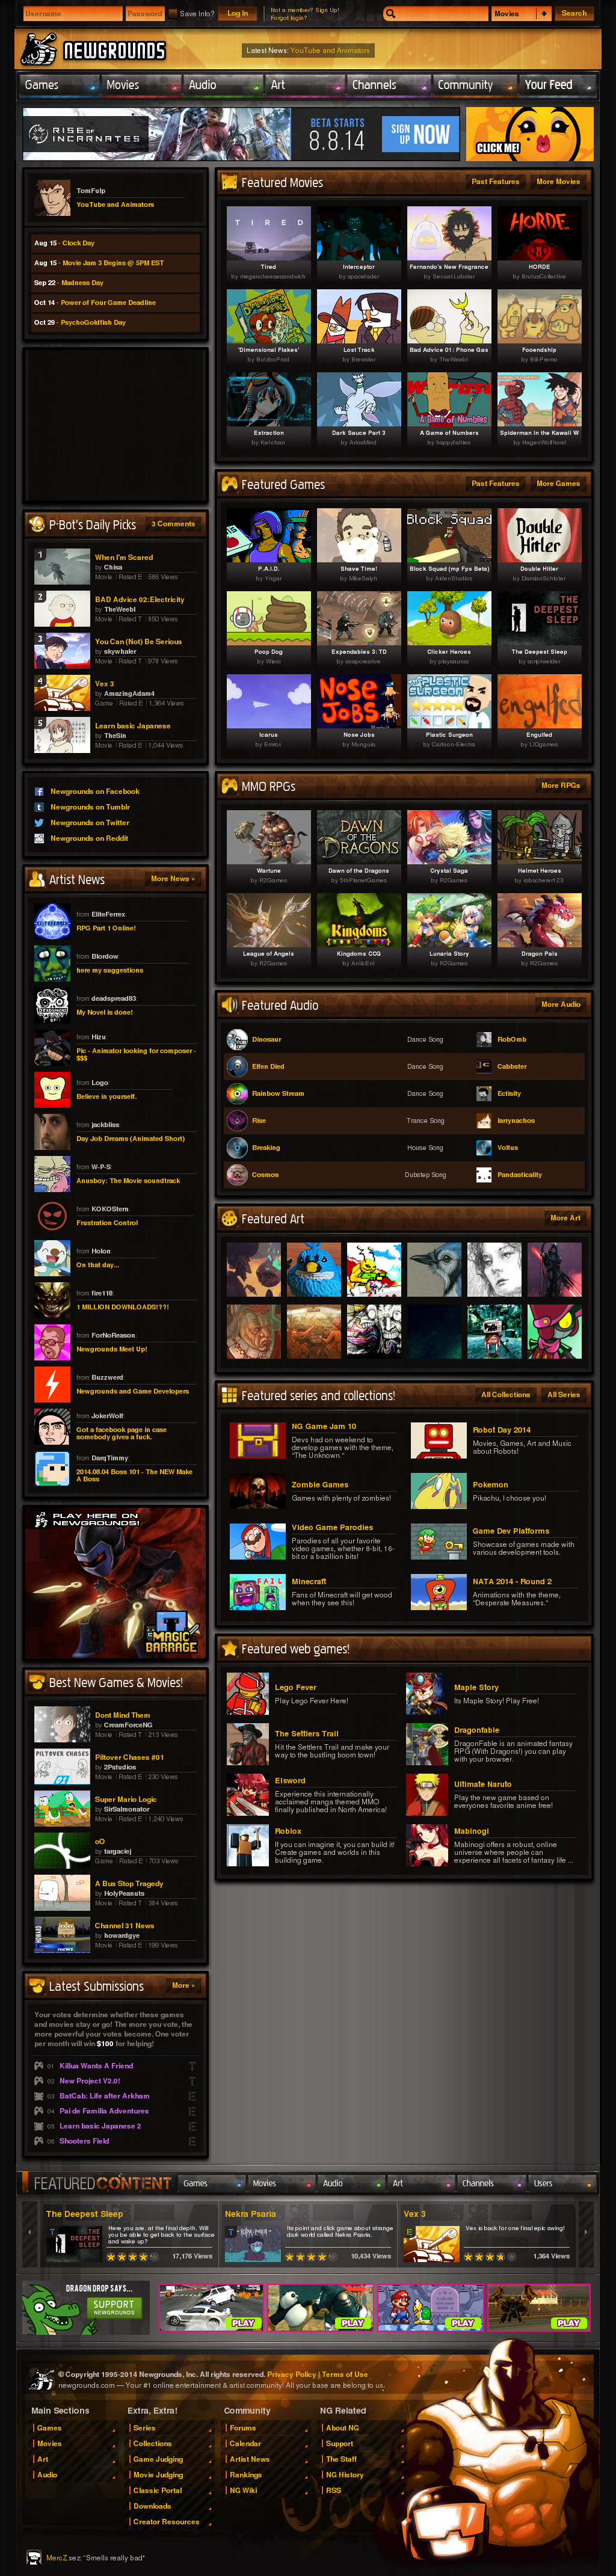 Newgrounds Competitors, Revenue and Employees - Owler